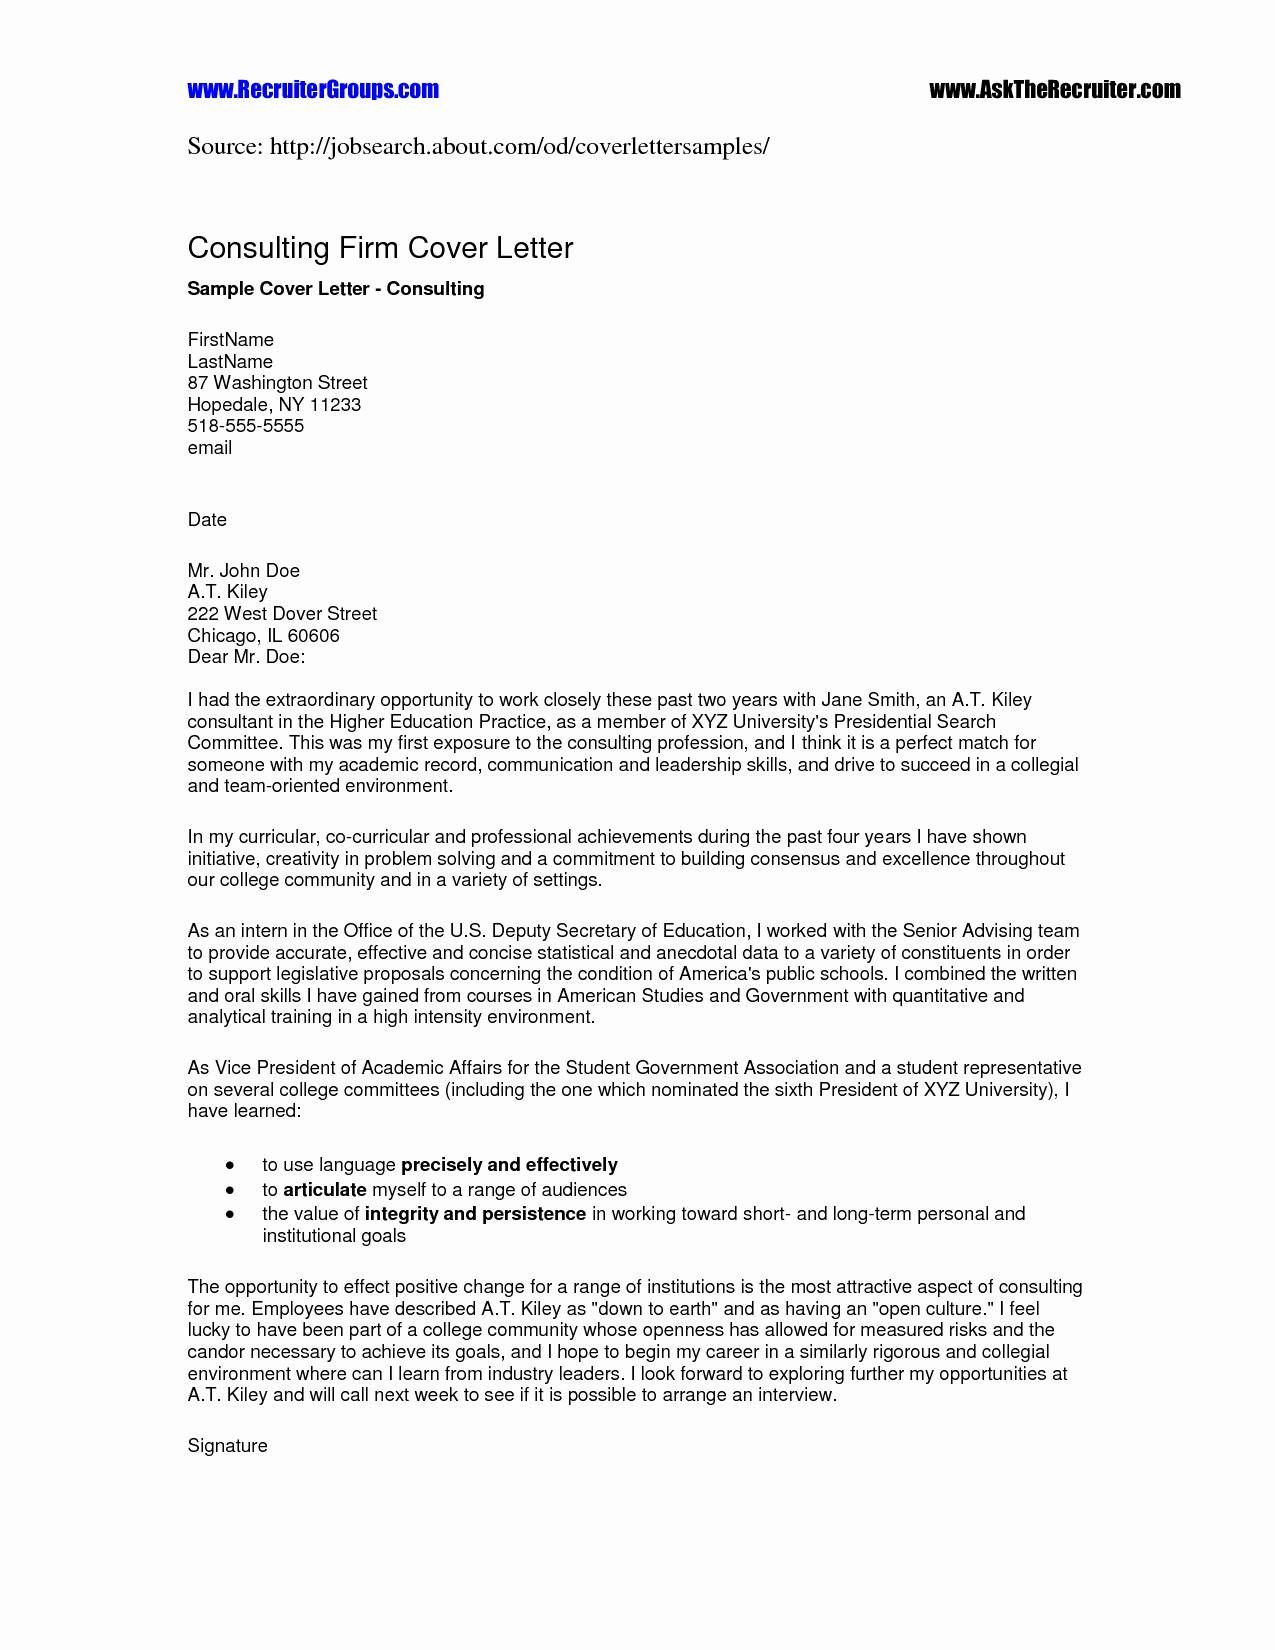 Awesome Cover Letter Template - Cover Letter Template Uk It Save Email Cover Letter Template Uk